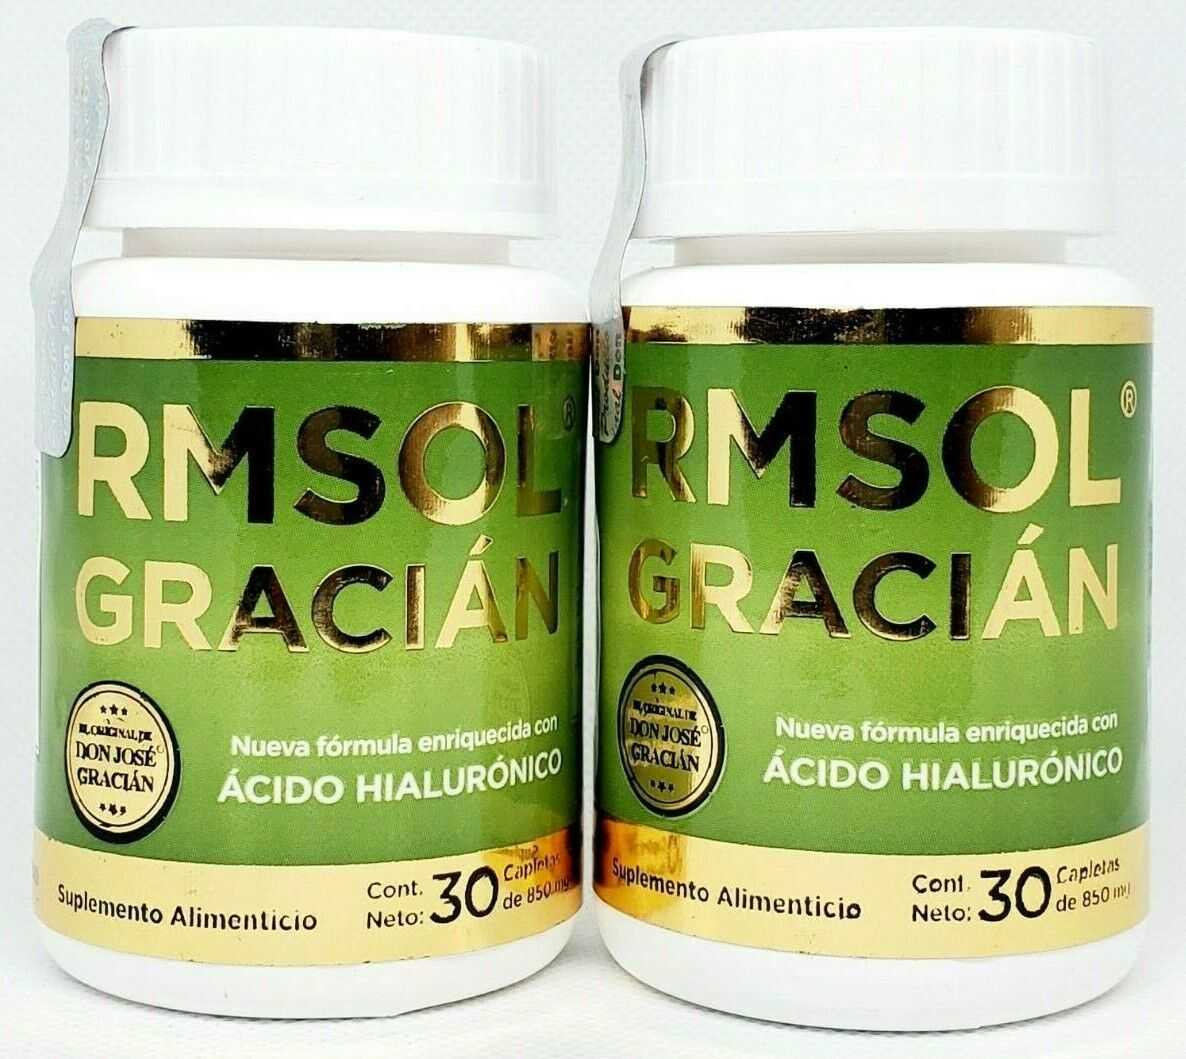 2 Pack RMSOL Gracian Original Acido Hialuronico Curcuma shark cartilage turmeric